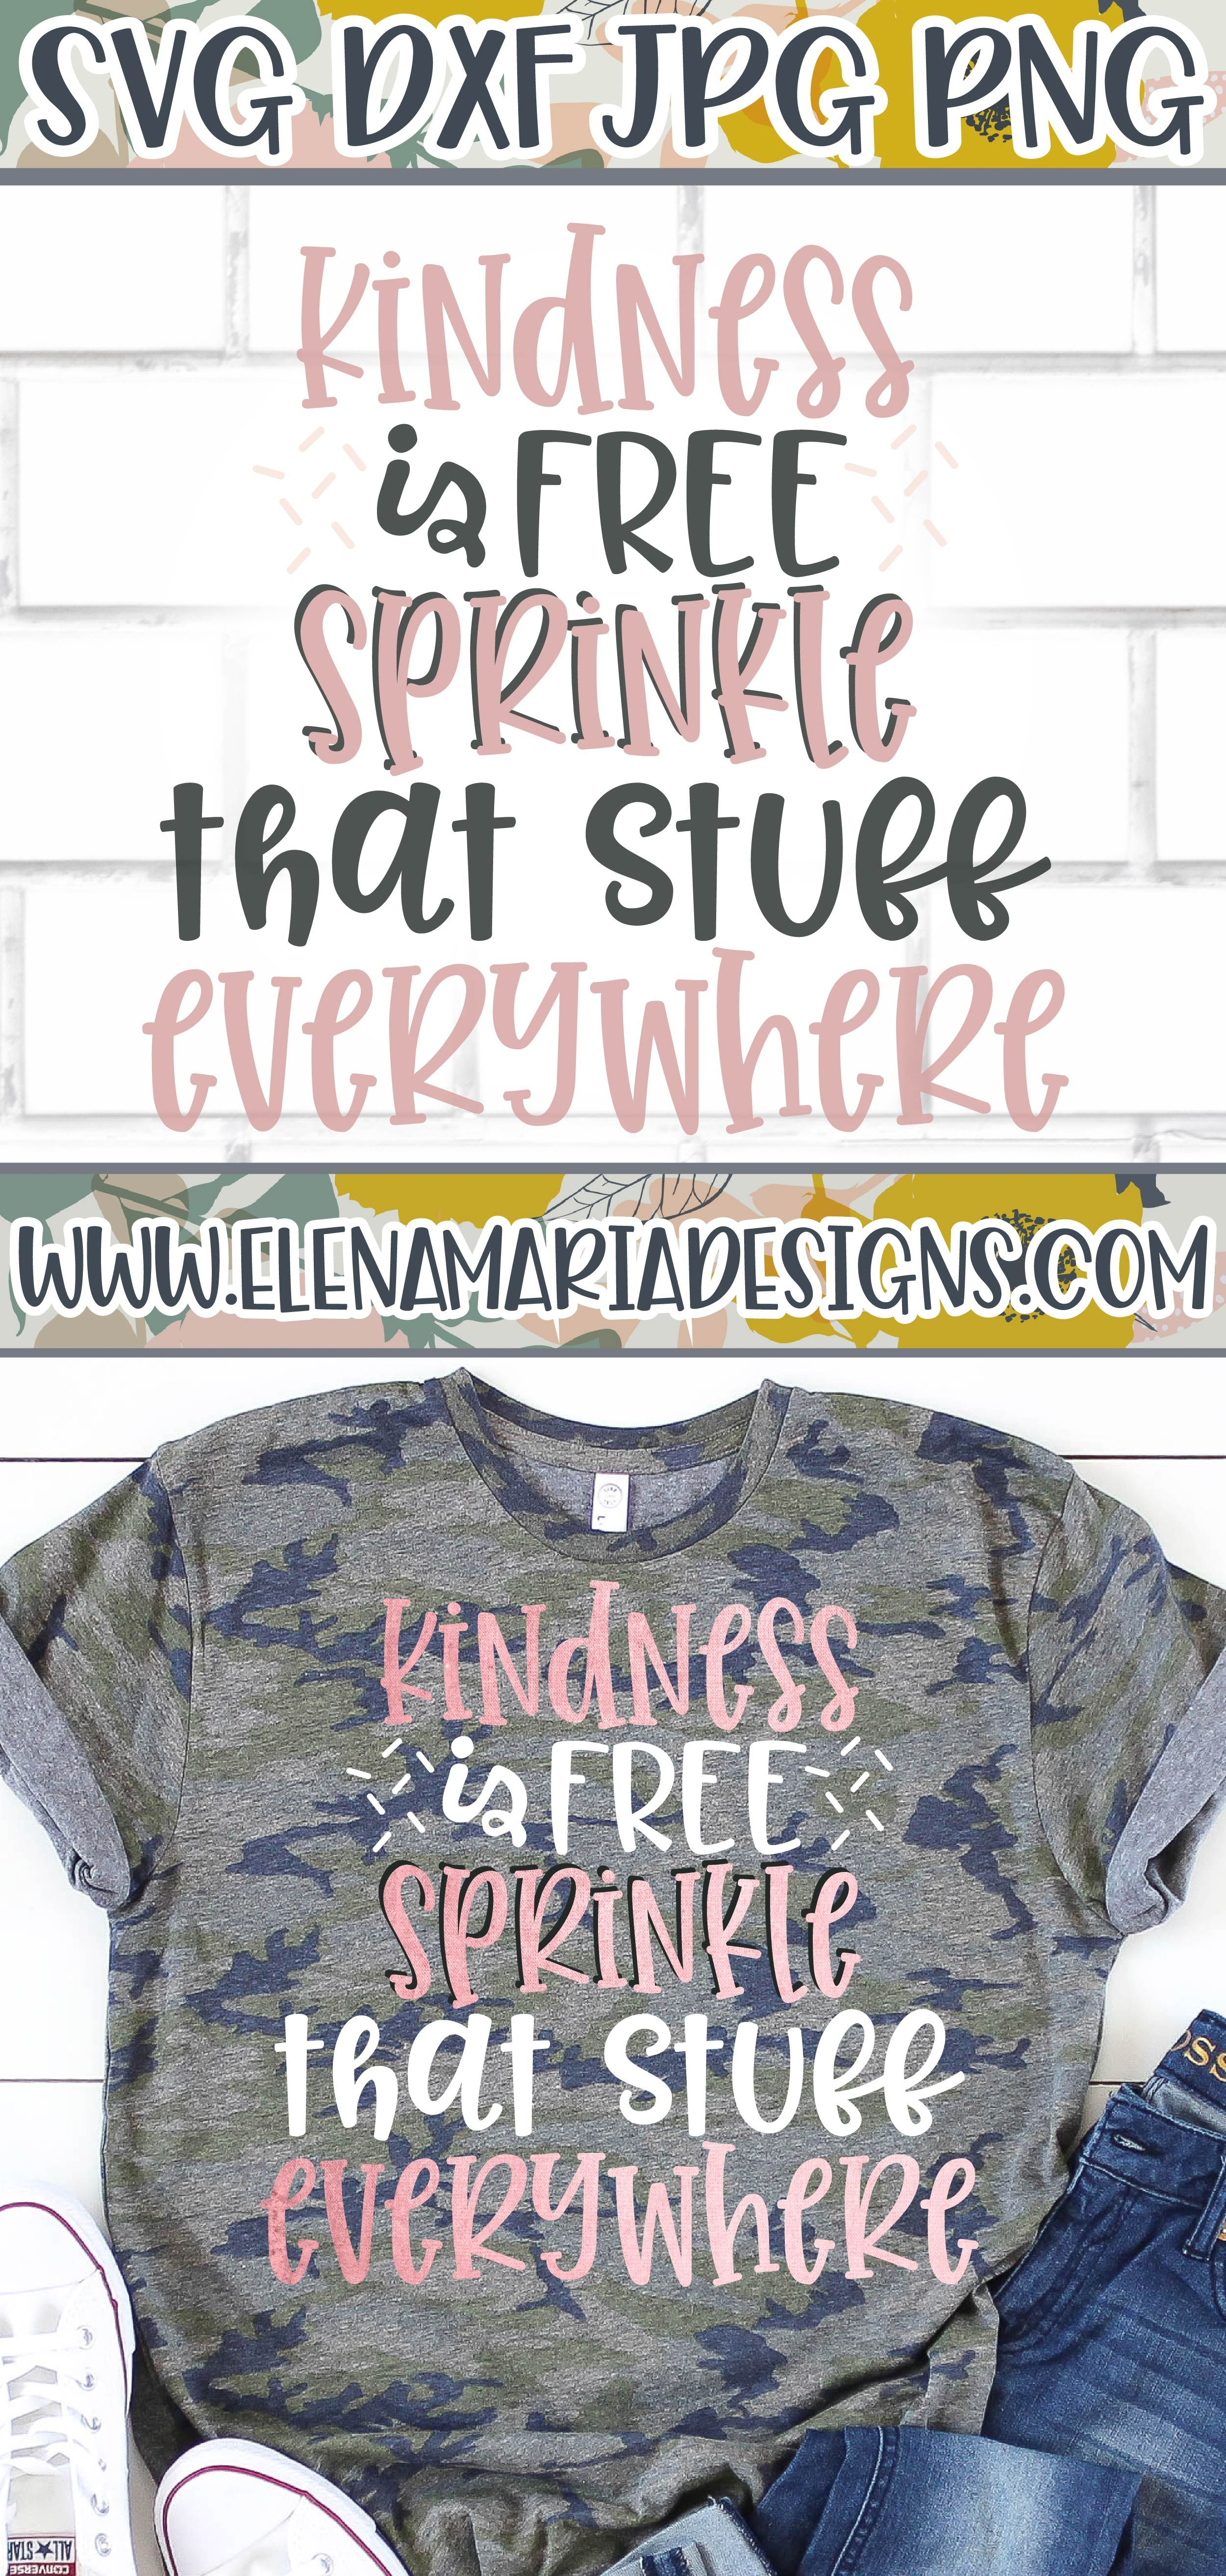 30+ Kindness Is Free Sprinkle That Stuff Everywhere Svg Gif